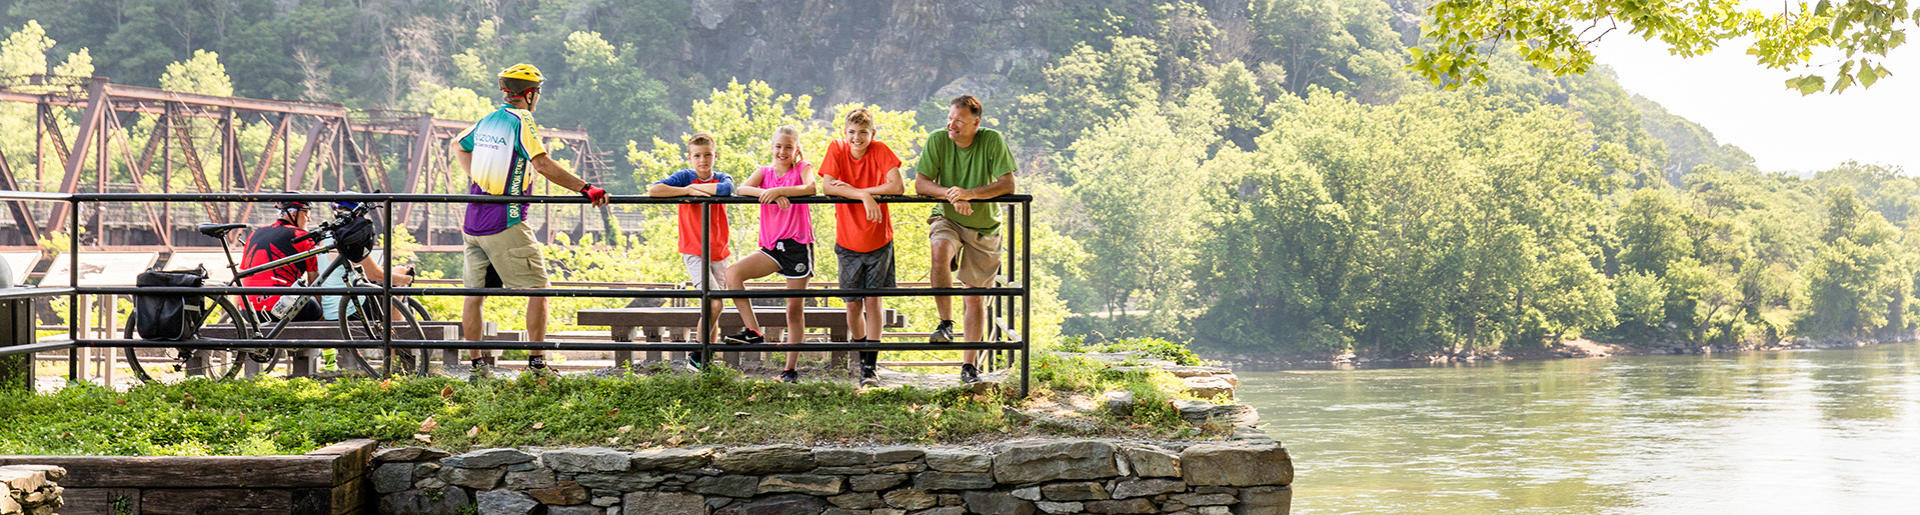 hiking and biking Harpers Ferry potomac and shenandoah rivers